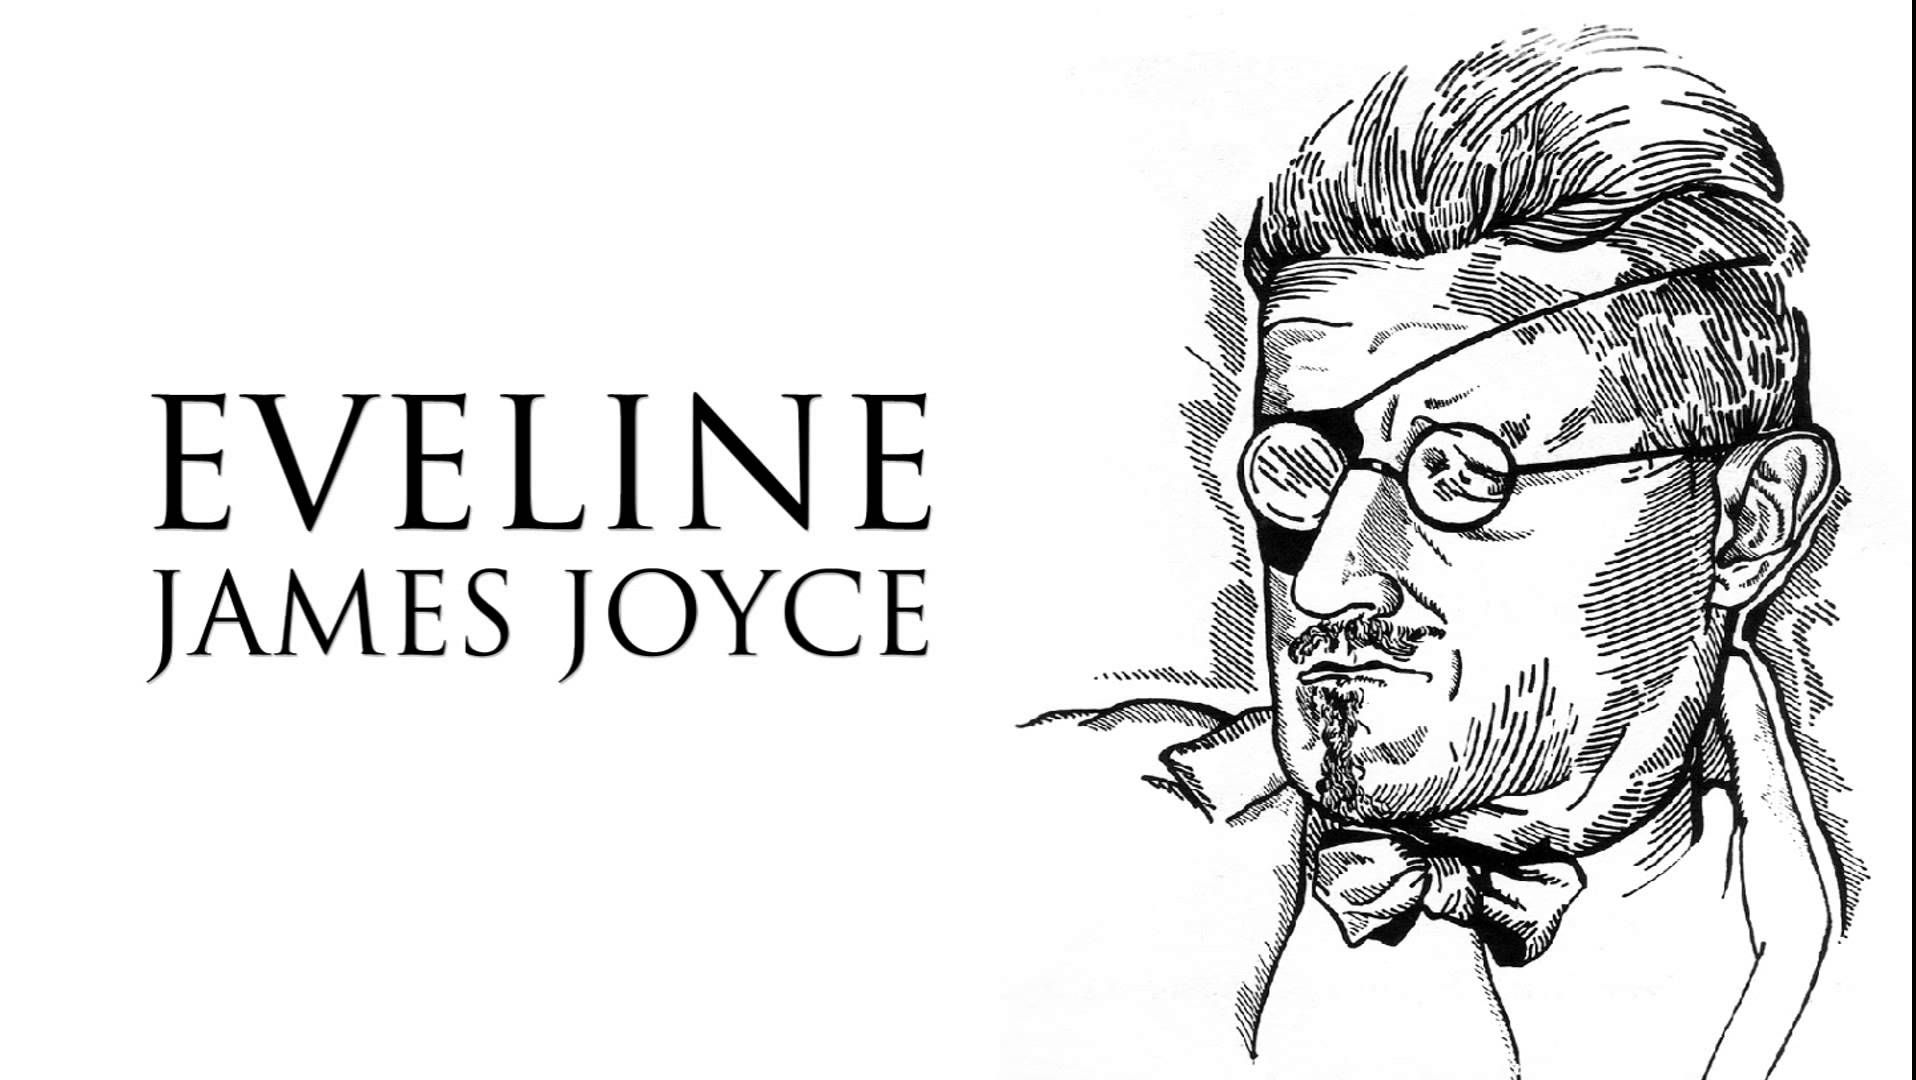 essays about eveline by james joyce Read eveline by james joyce free essay and over 88,000 other research documents eveline by james joyce eveline is yet another tale about paralysis from james joyce's dubliners it is a story of arduous childhood and adolescence.